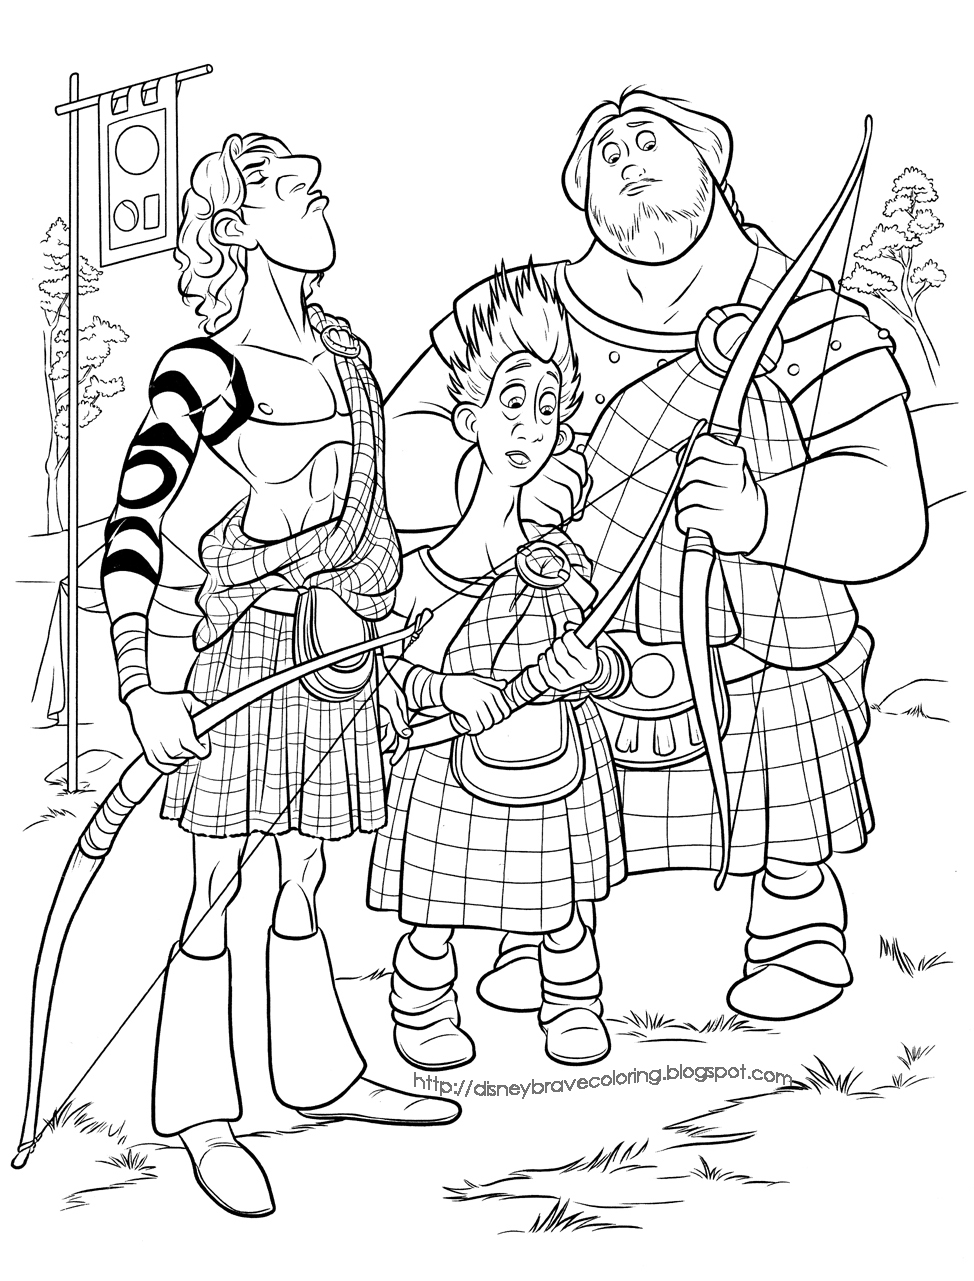 Disney Coloring Pages Brave : Brave merida coloring pages